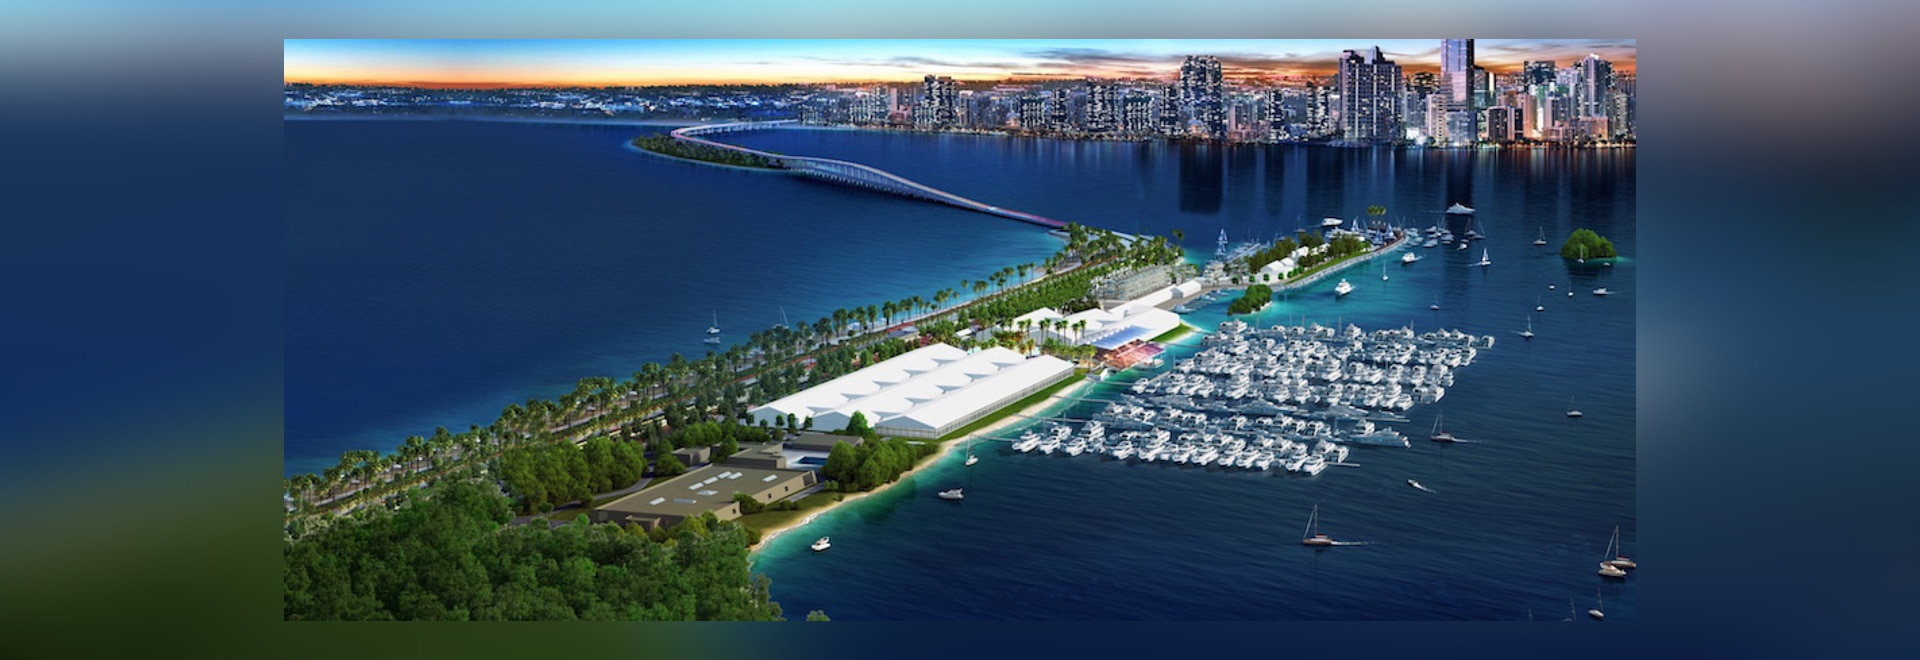 Miami International Boat Show unveils new transportation plan for Miami Marine Stadium Park & Basin